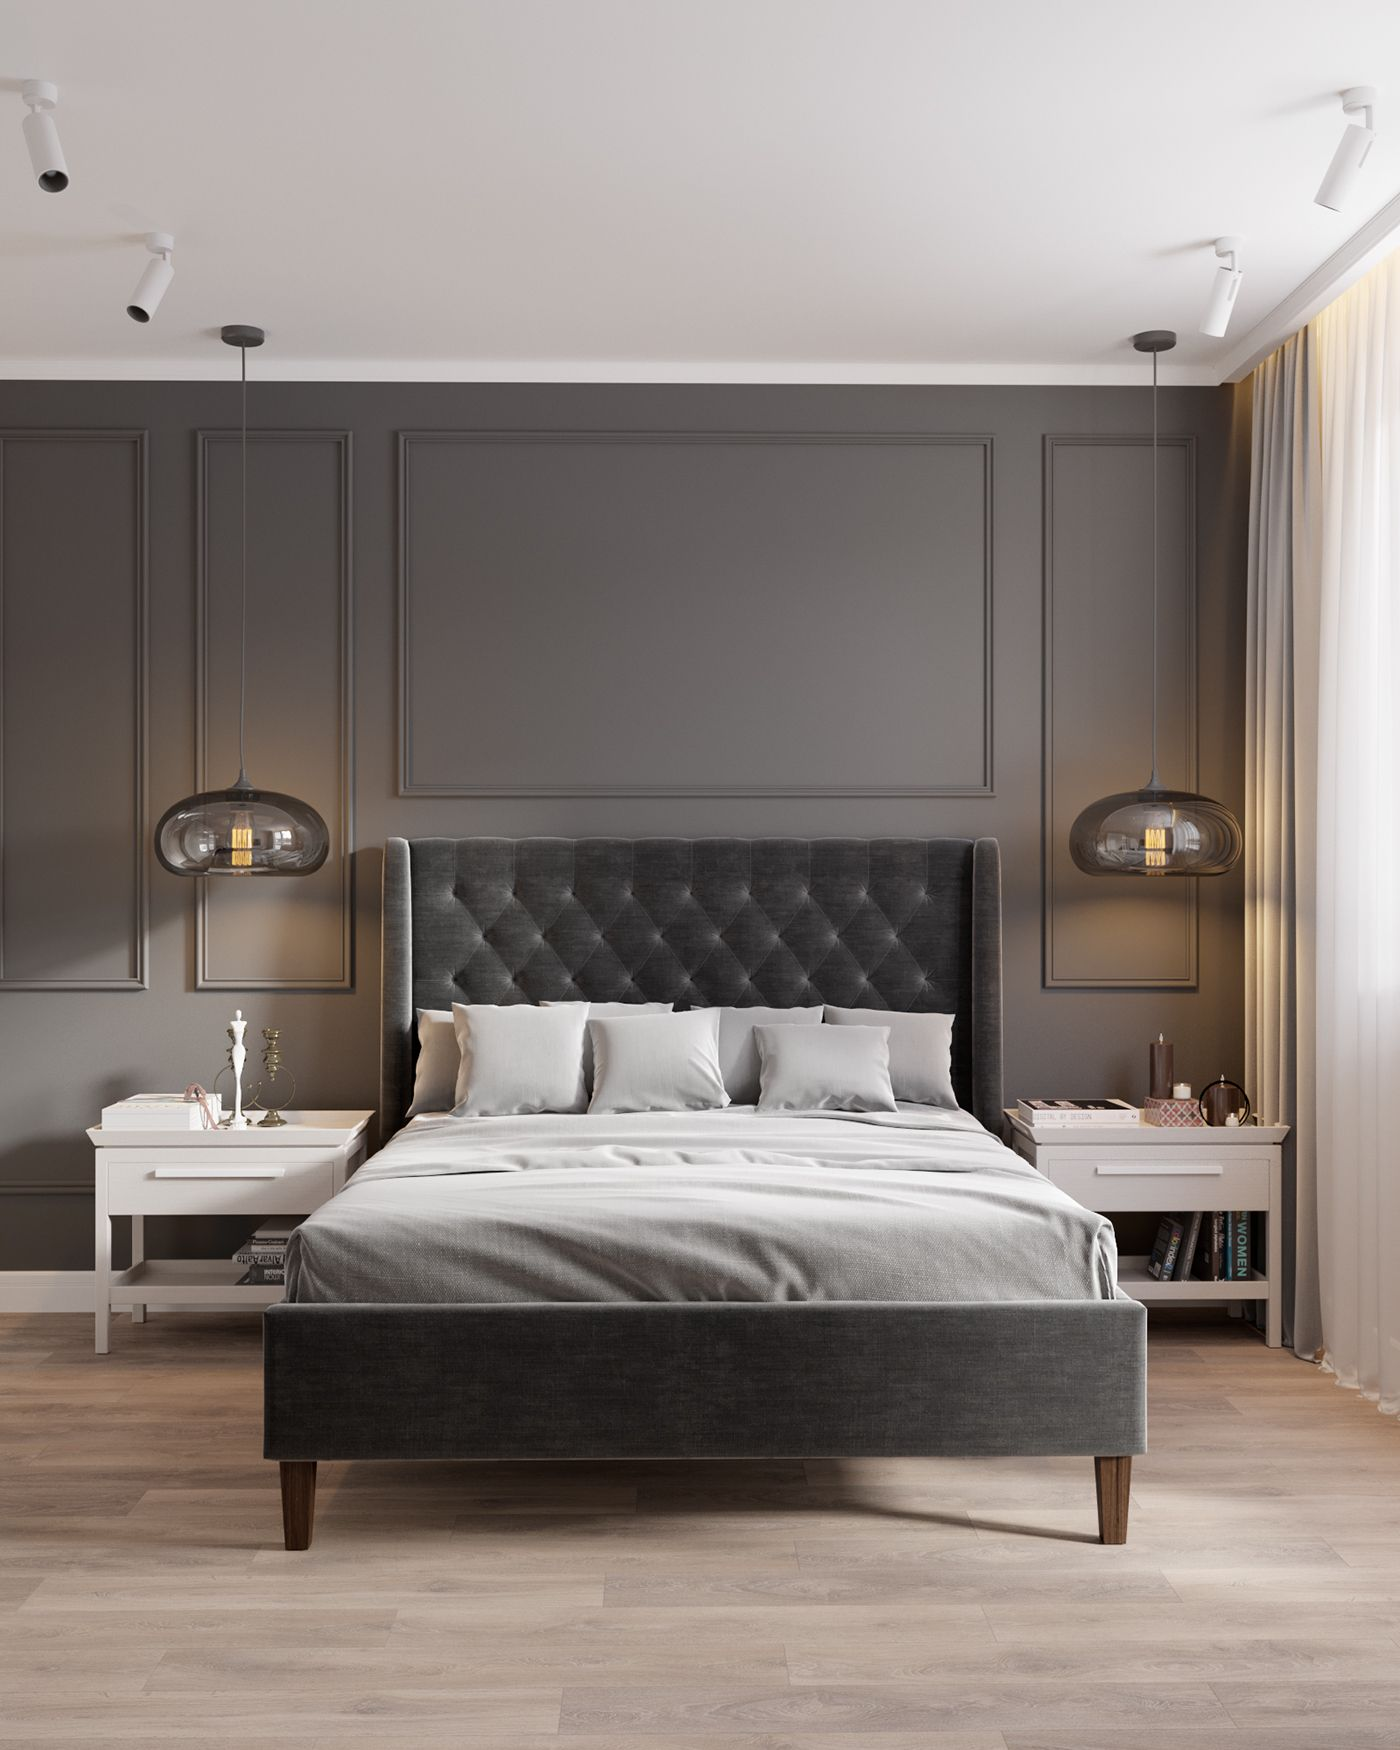 40 Guest Bedroom Ideas: Apartment 75m2 On Behance